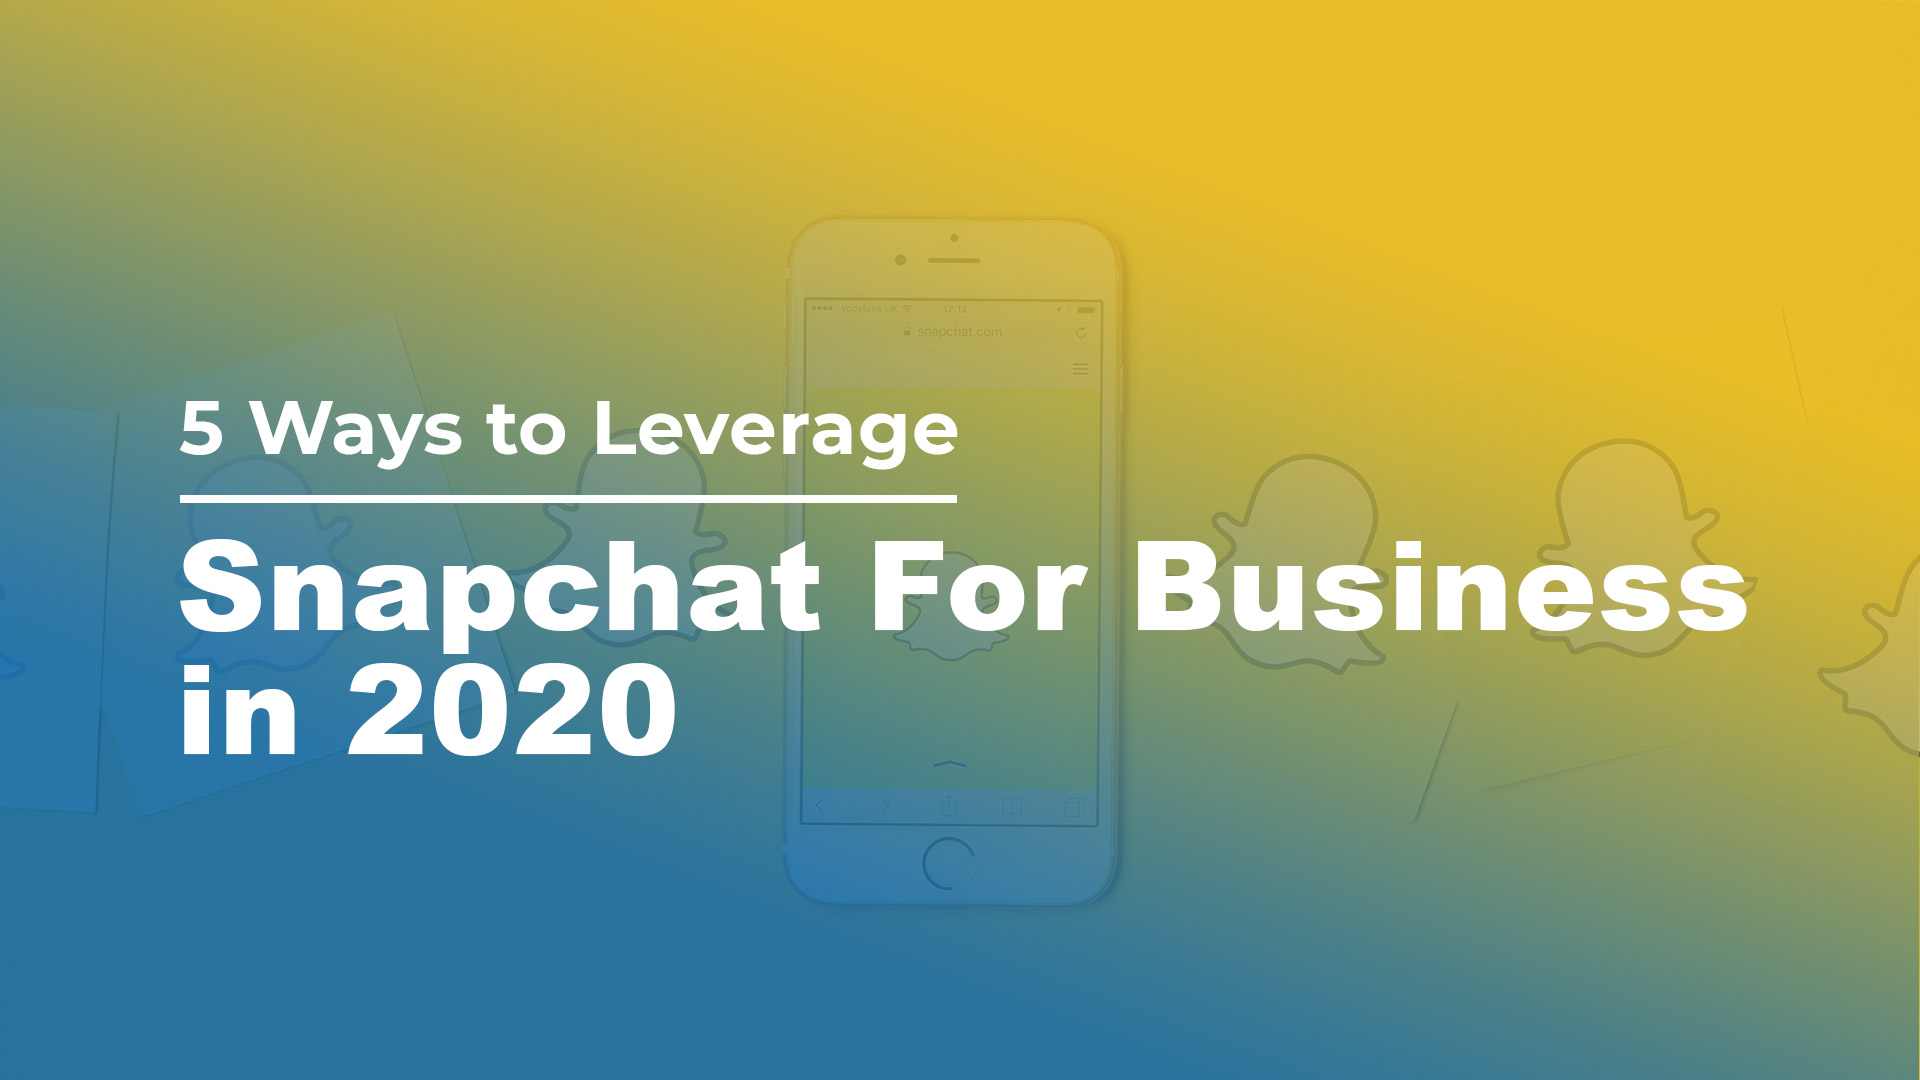 5 Ways to Leverage Snapchat For Business in 2020